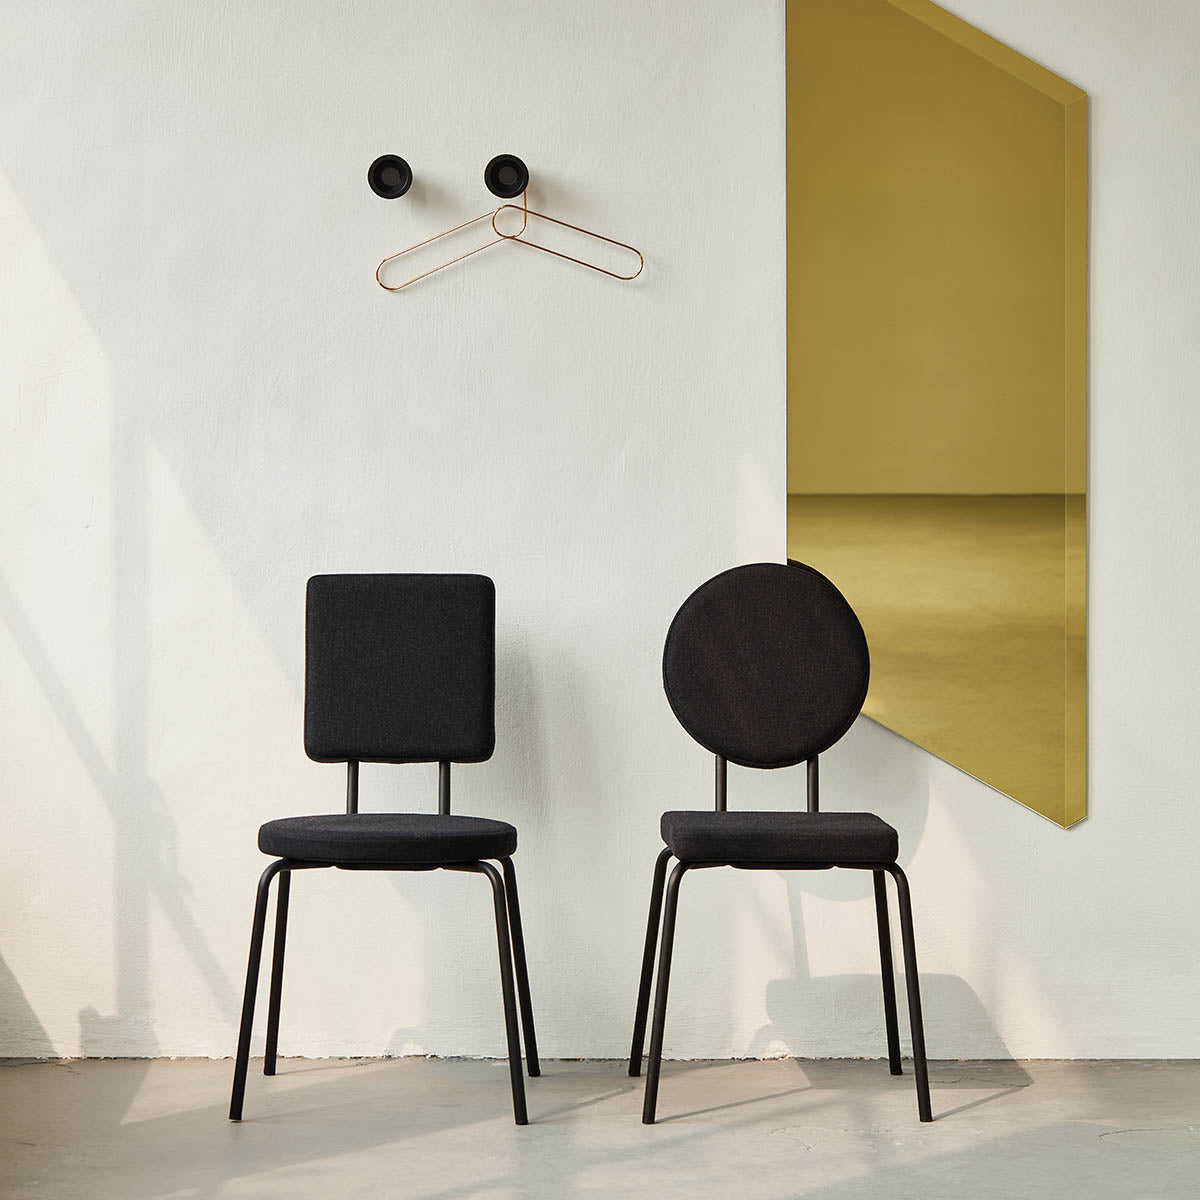 Gold Facett geometric design wall mirror with two black shape chairs